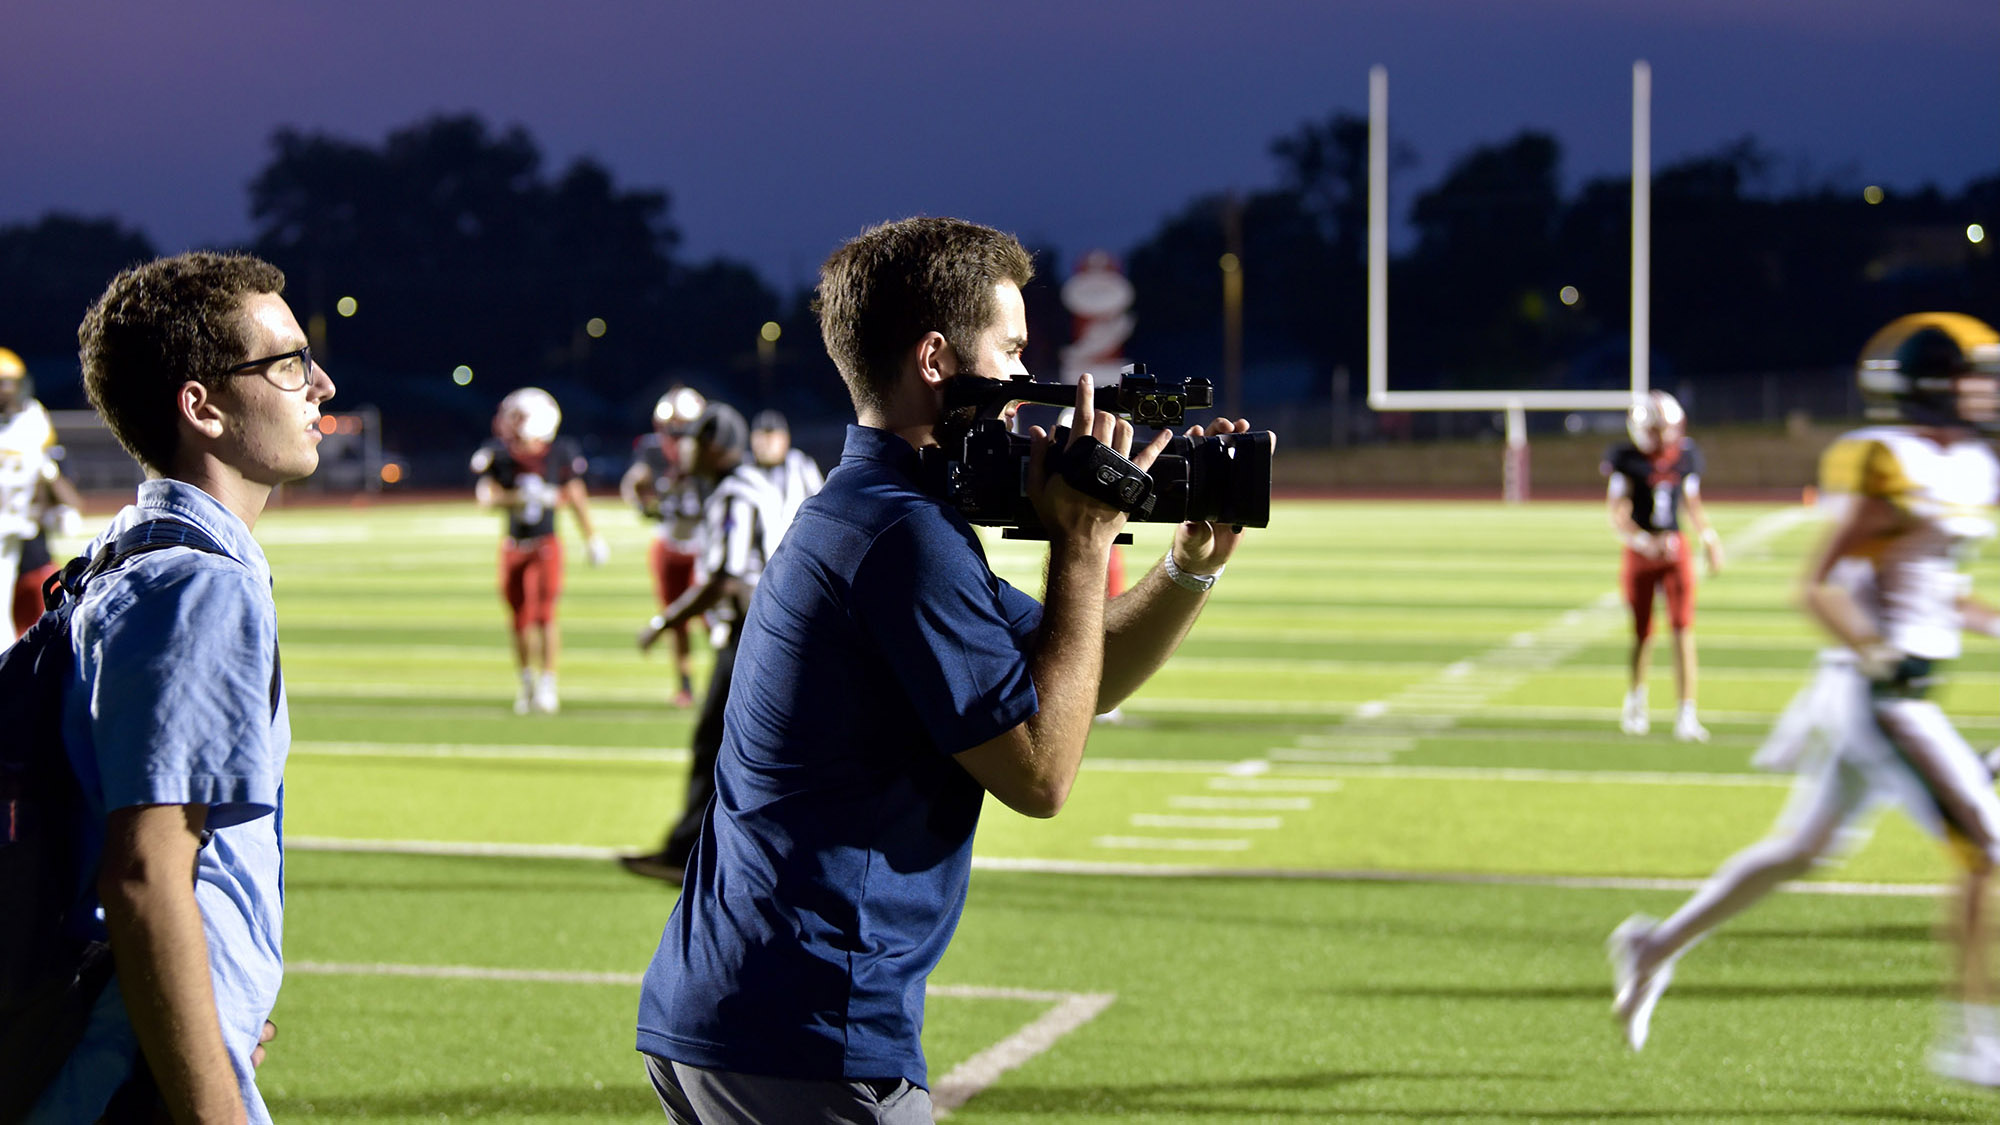 a student records video during a football game